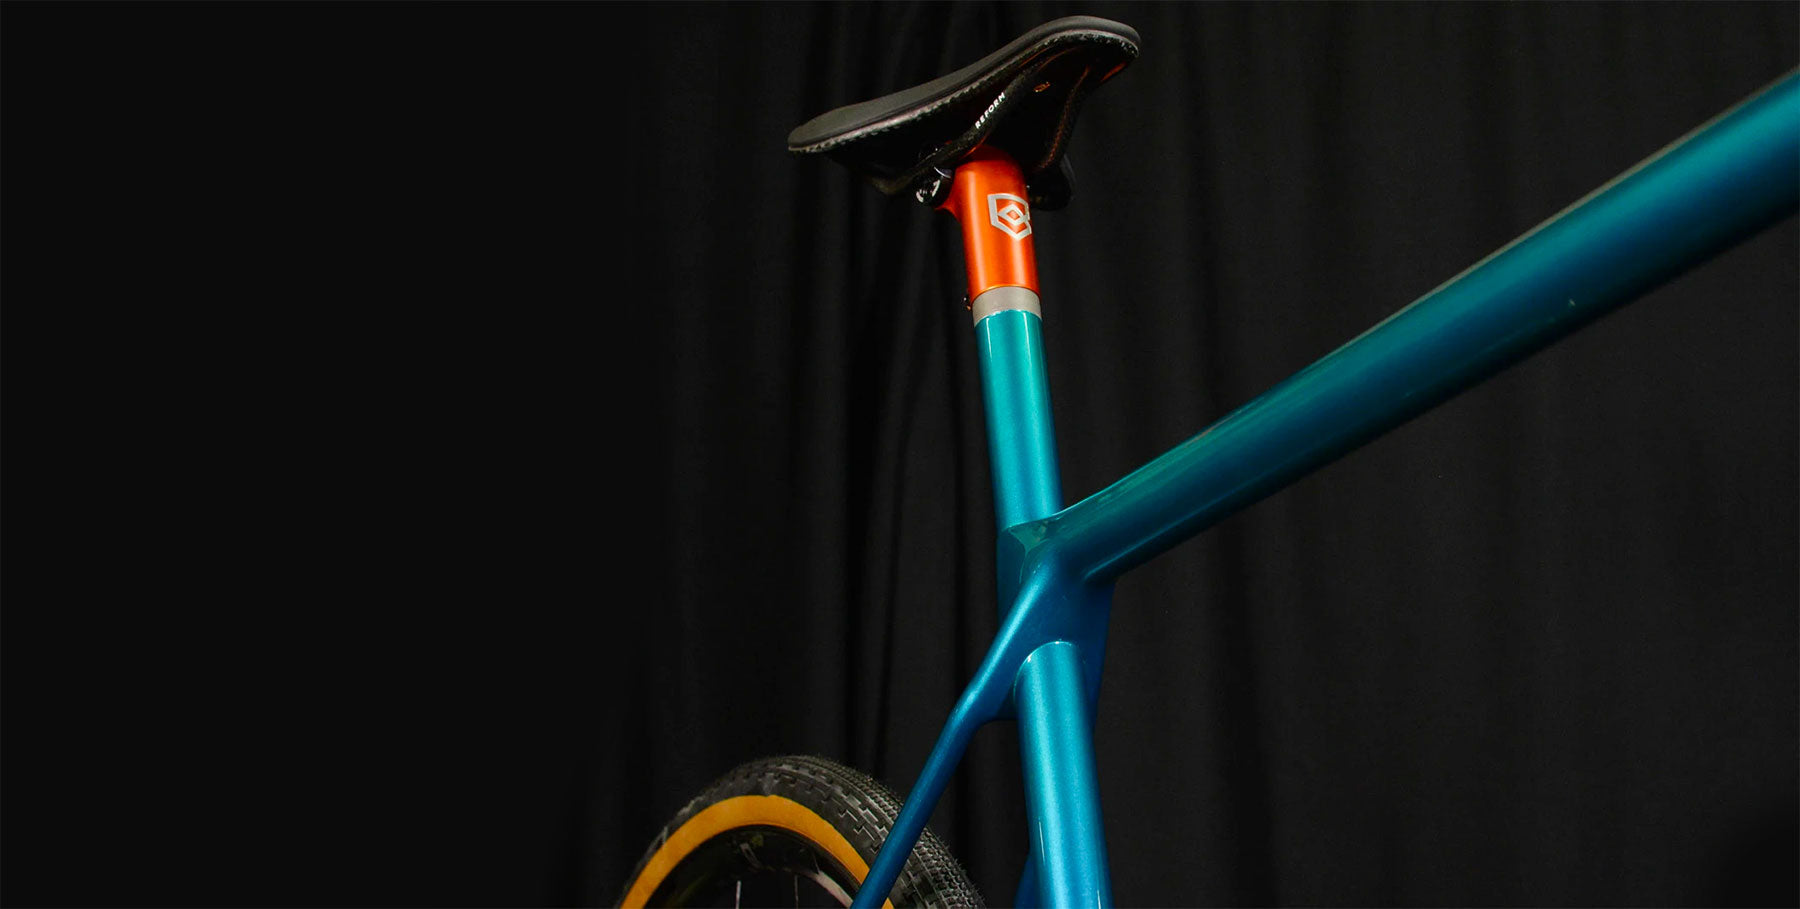 Handmade Bicycle Show Australia 2021 |  7-9 May @ Seaworks